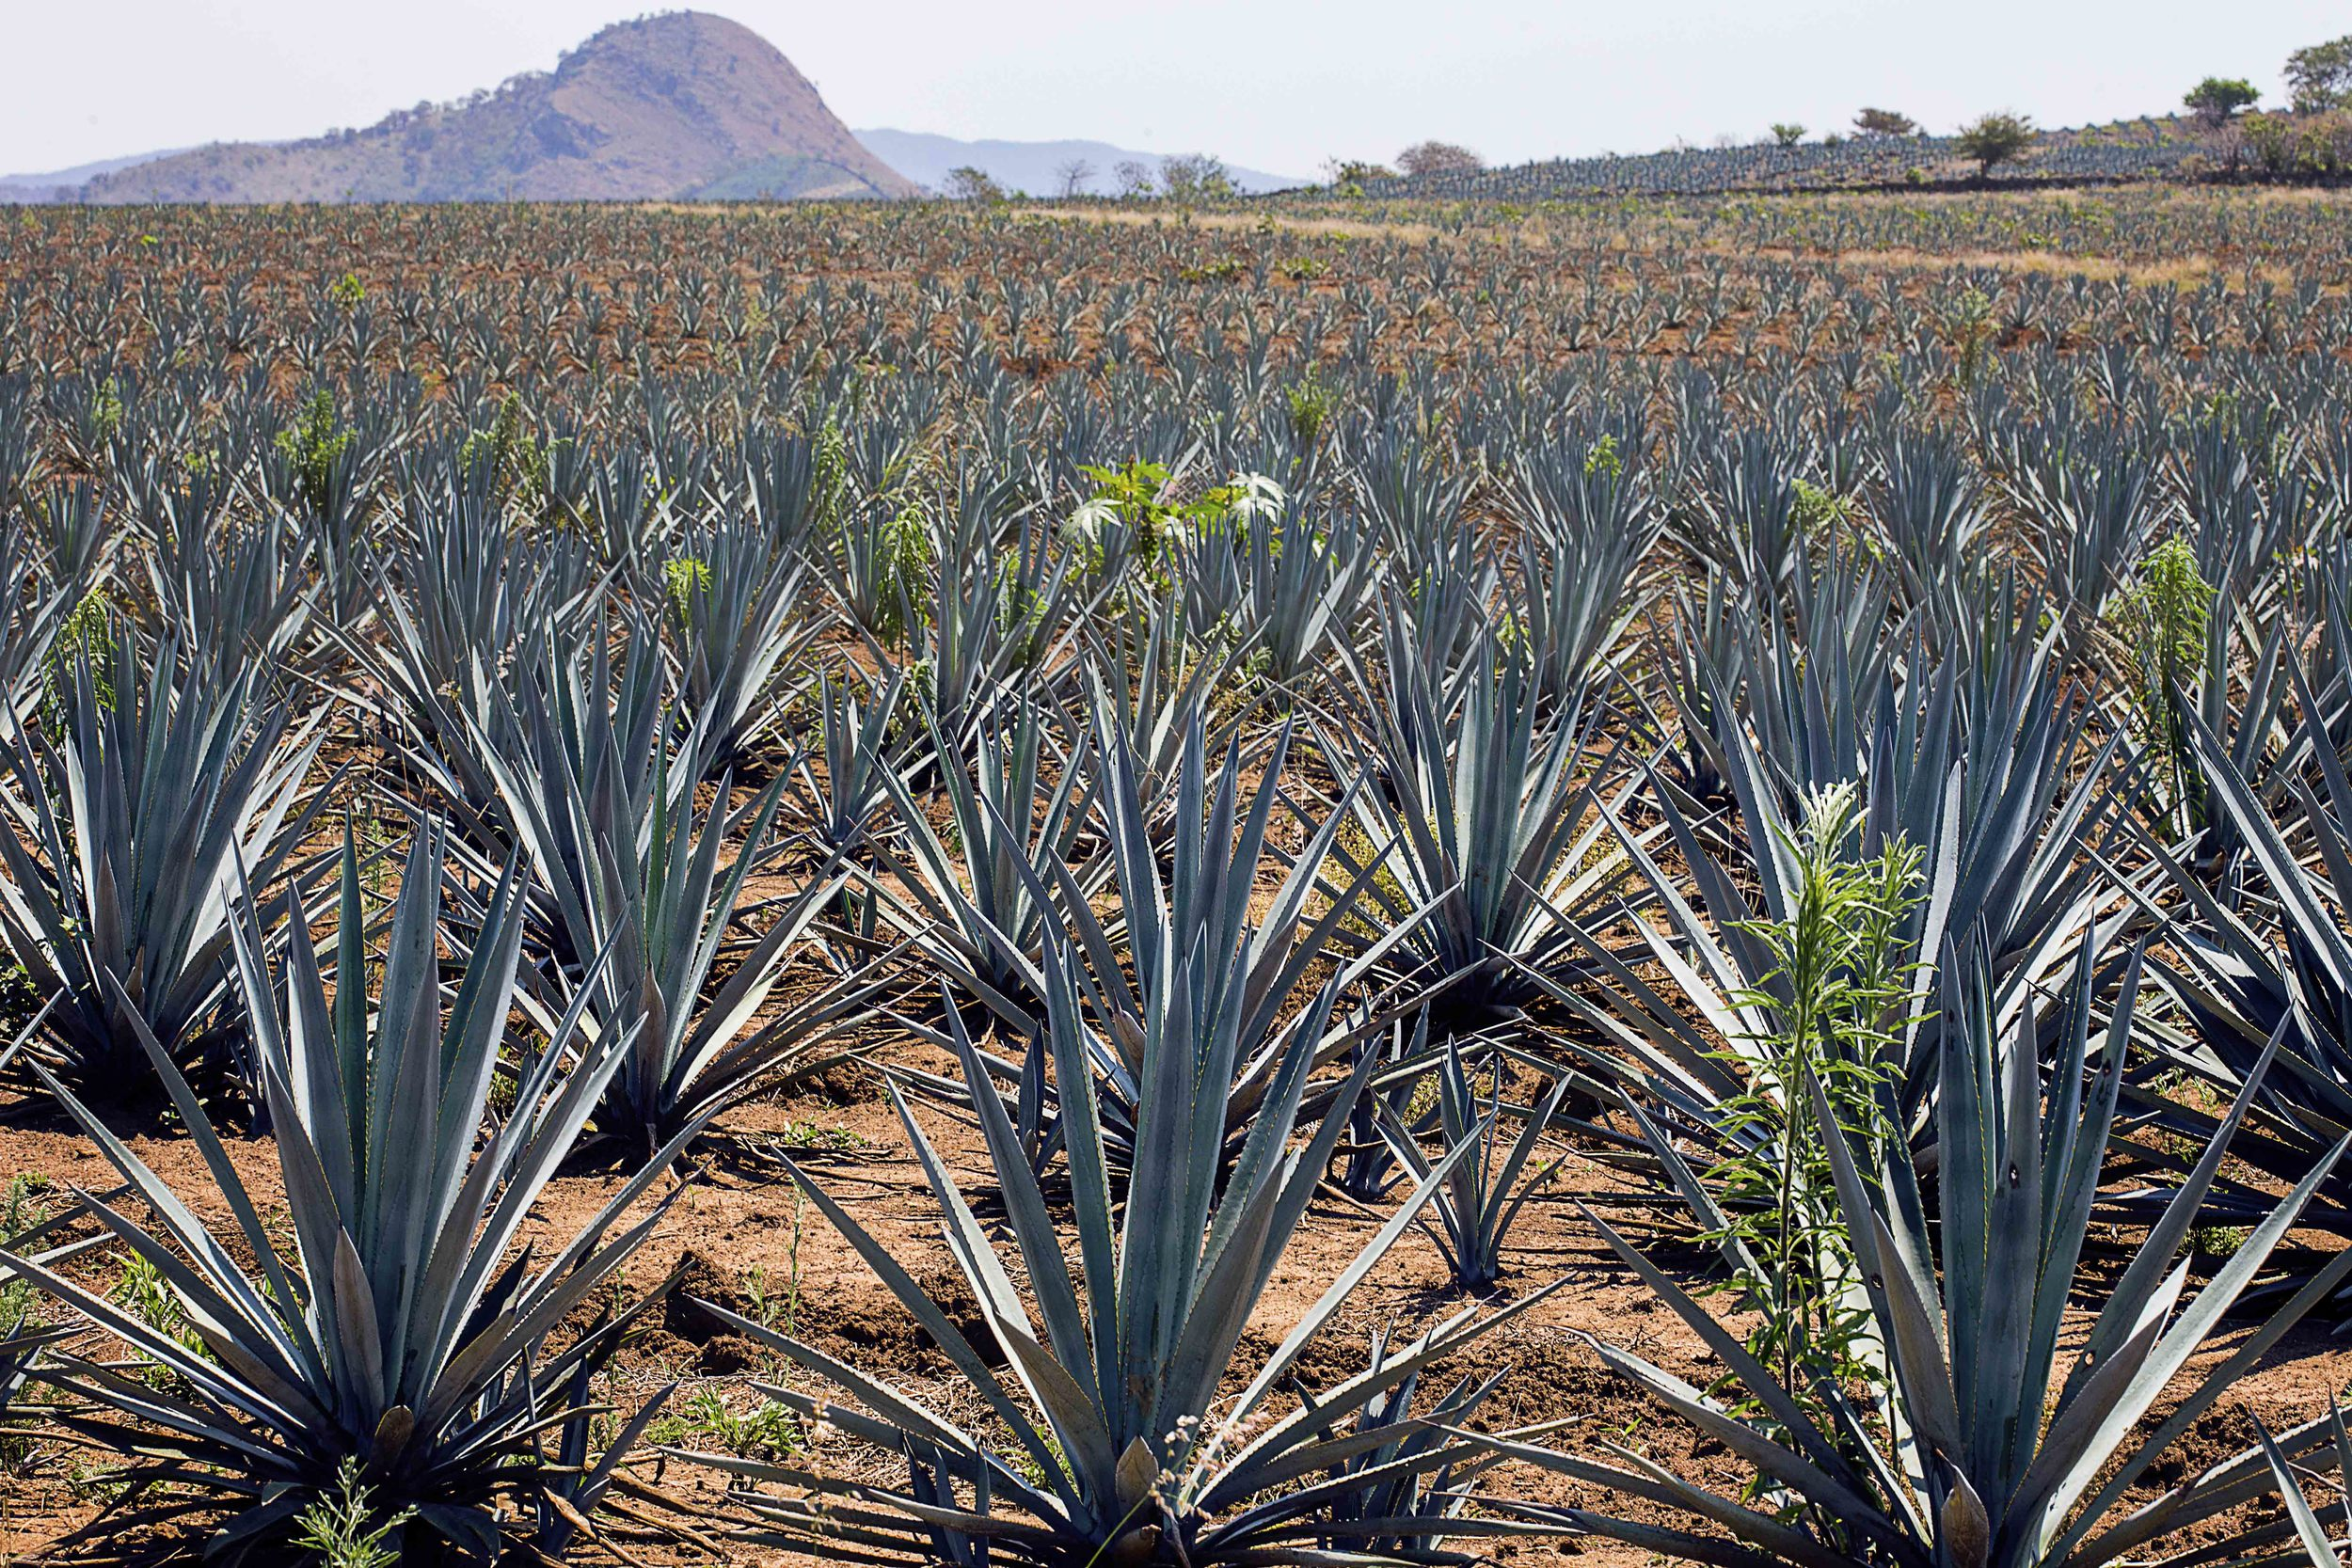 Day 72 - Tequila, Jalisco, MX   The blue agave fields that make my favorite drink.  Think of wine tasting in Napa Valley, Tequila version!  Get a tour guide to take you to some of the finest and oldest Tequilerias like Jose Cuervo, Sauza and 3 Mujeres in the town where this drink got it's name.  Don't forget to have a big breakfast before you start!